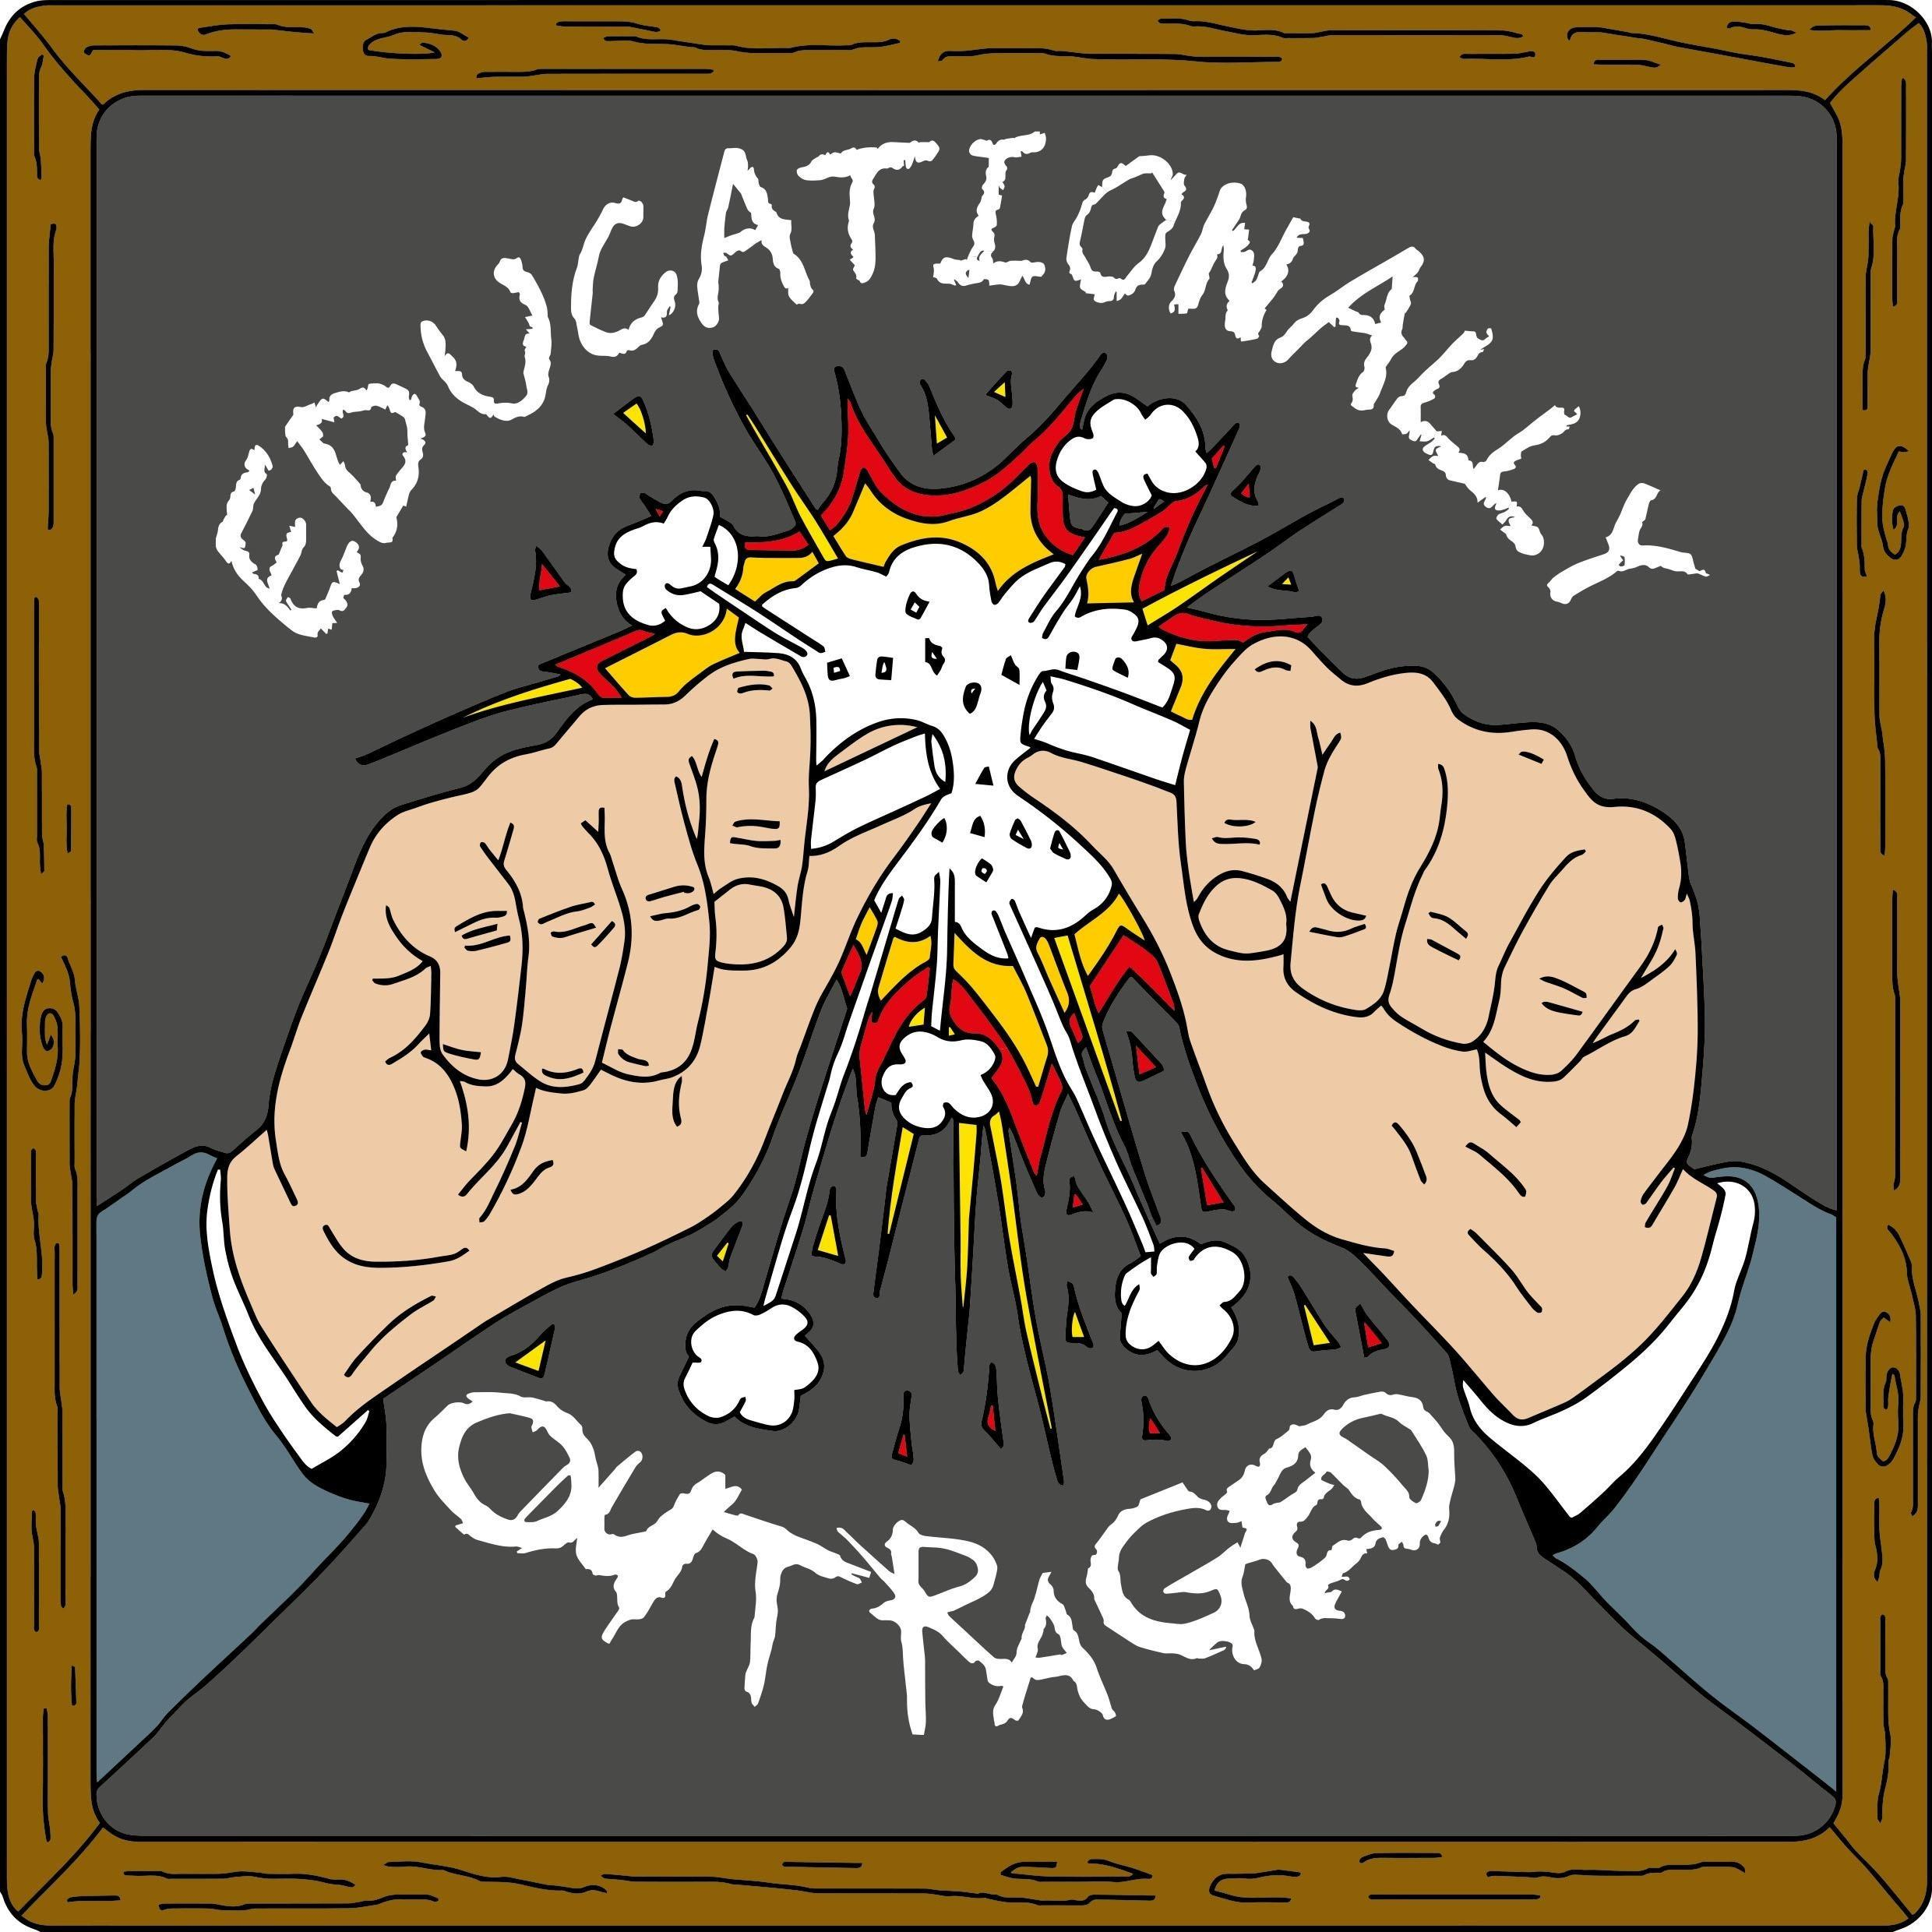 Episode 01: Educationally Outraged with Iain Rankin